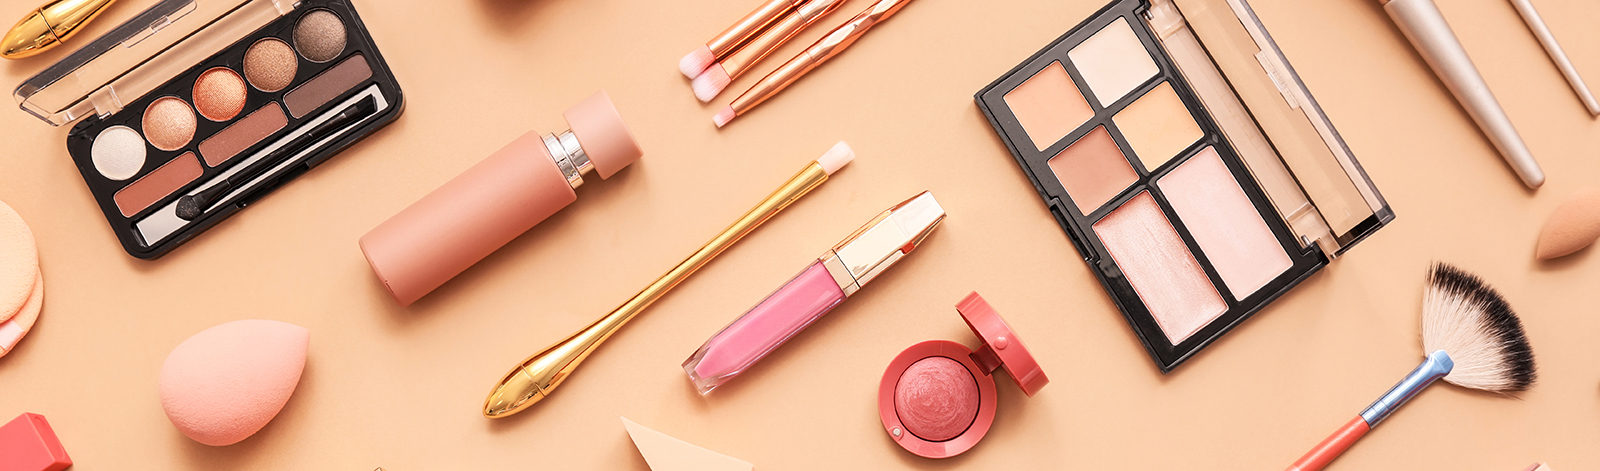 Set of makeup brushes with other makeup products